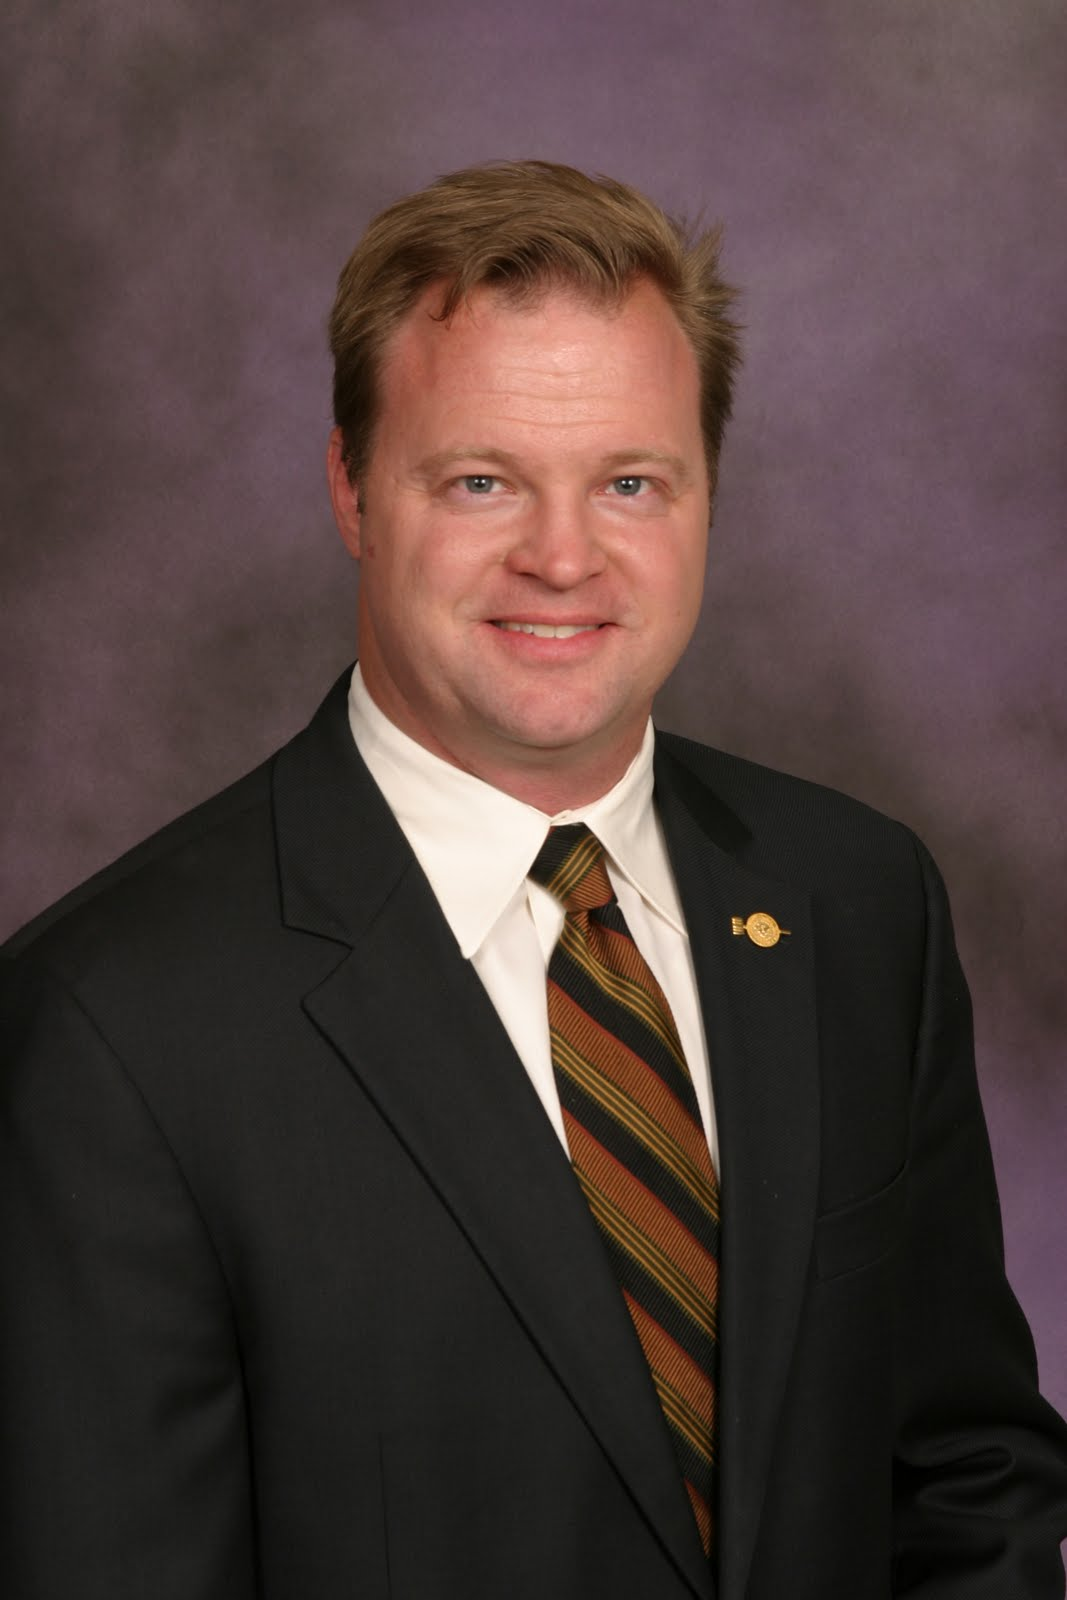 Mike Speedy, State Representative, Indiana